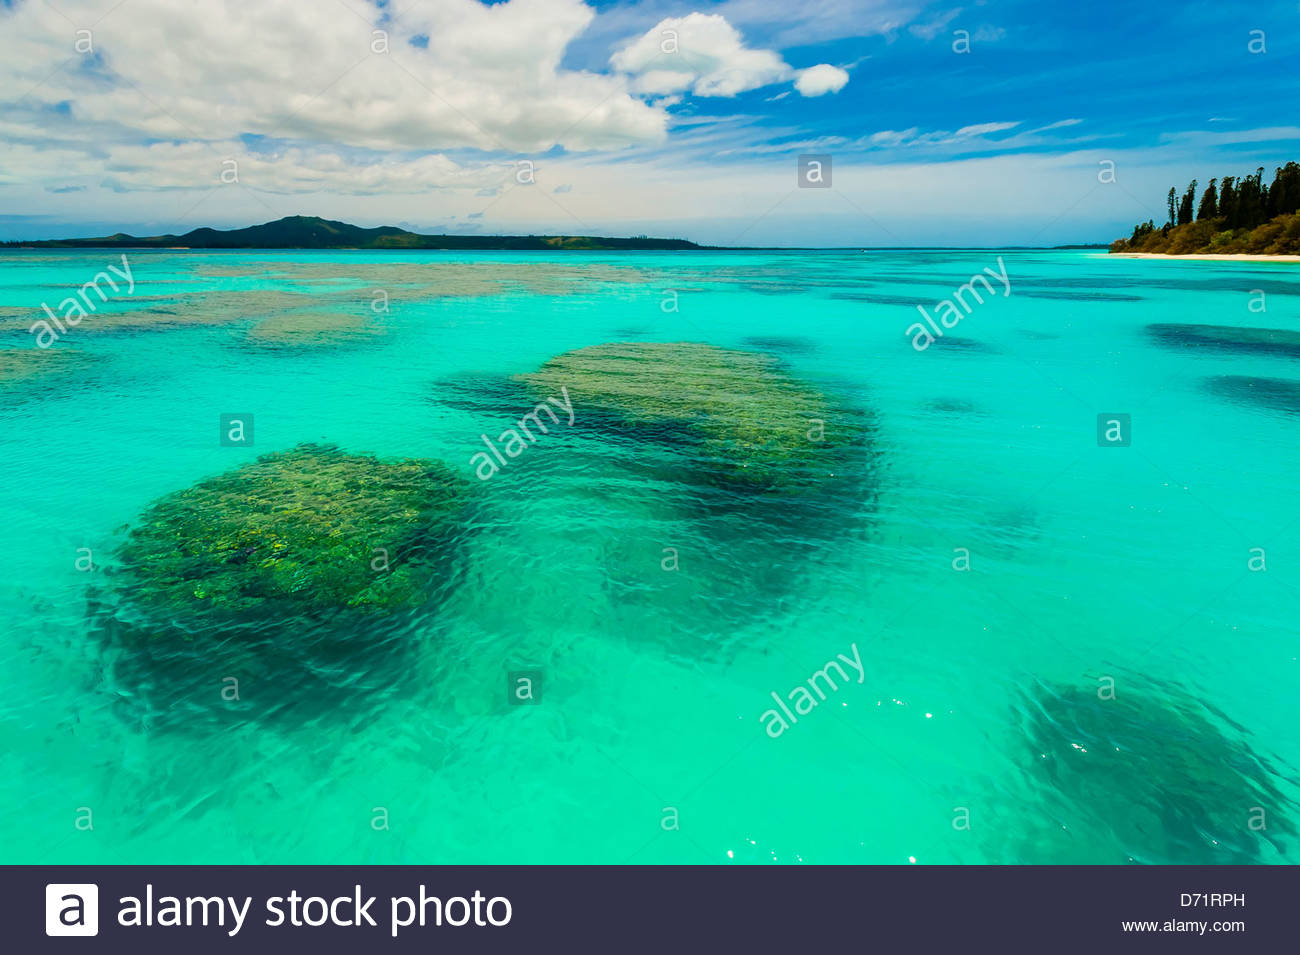 Coral reefs surrounding Brush Island, New Caledonia Barrier Reef off Ile des Pins (Isle of Pines), New Caledonia - Stock Image